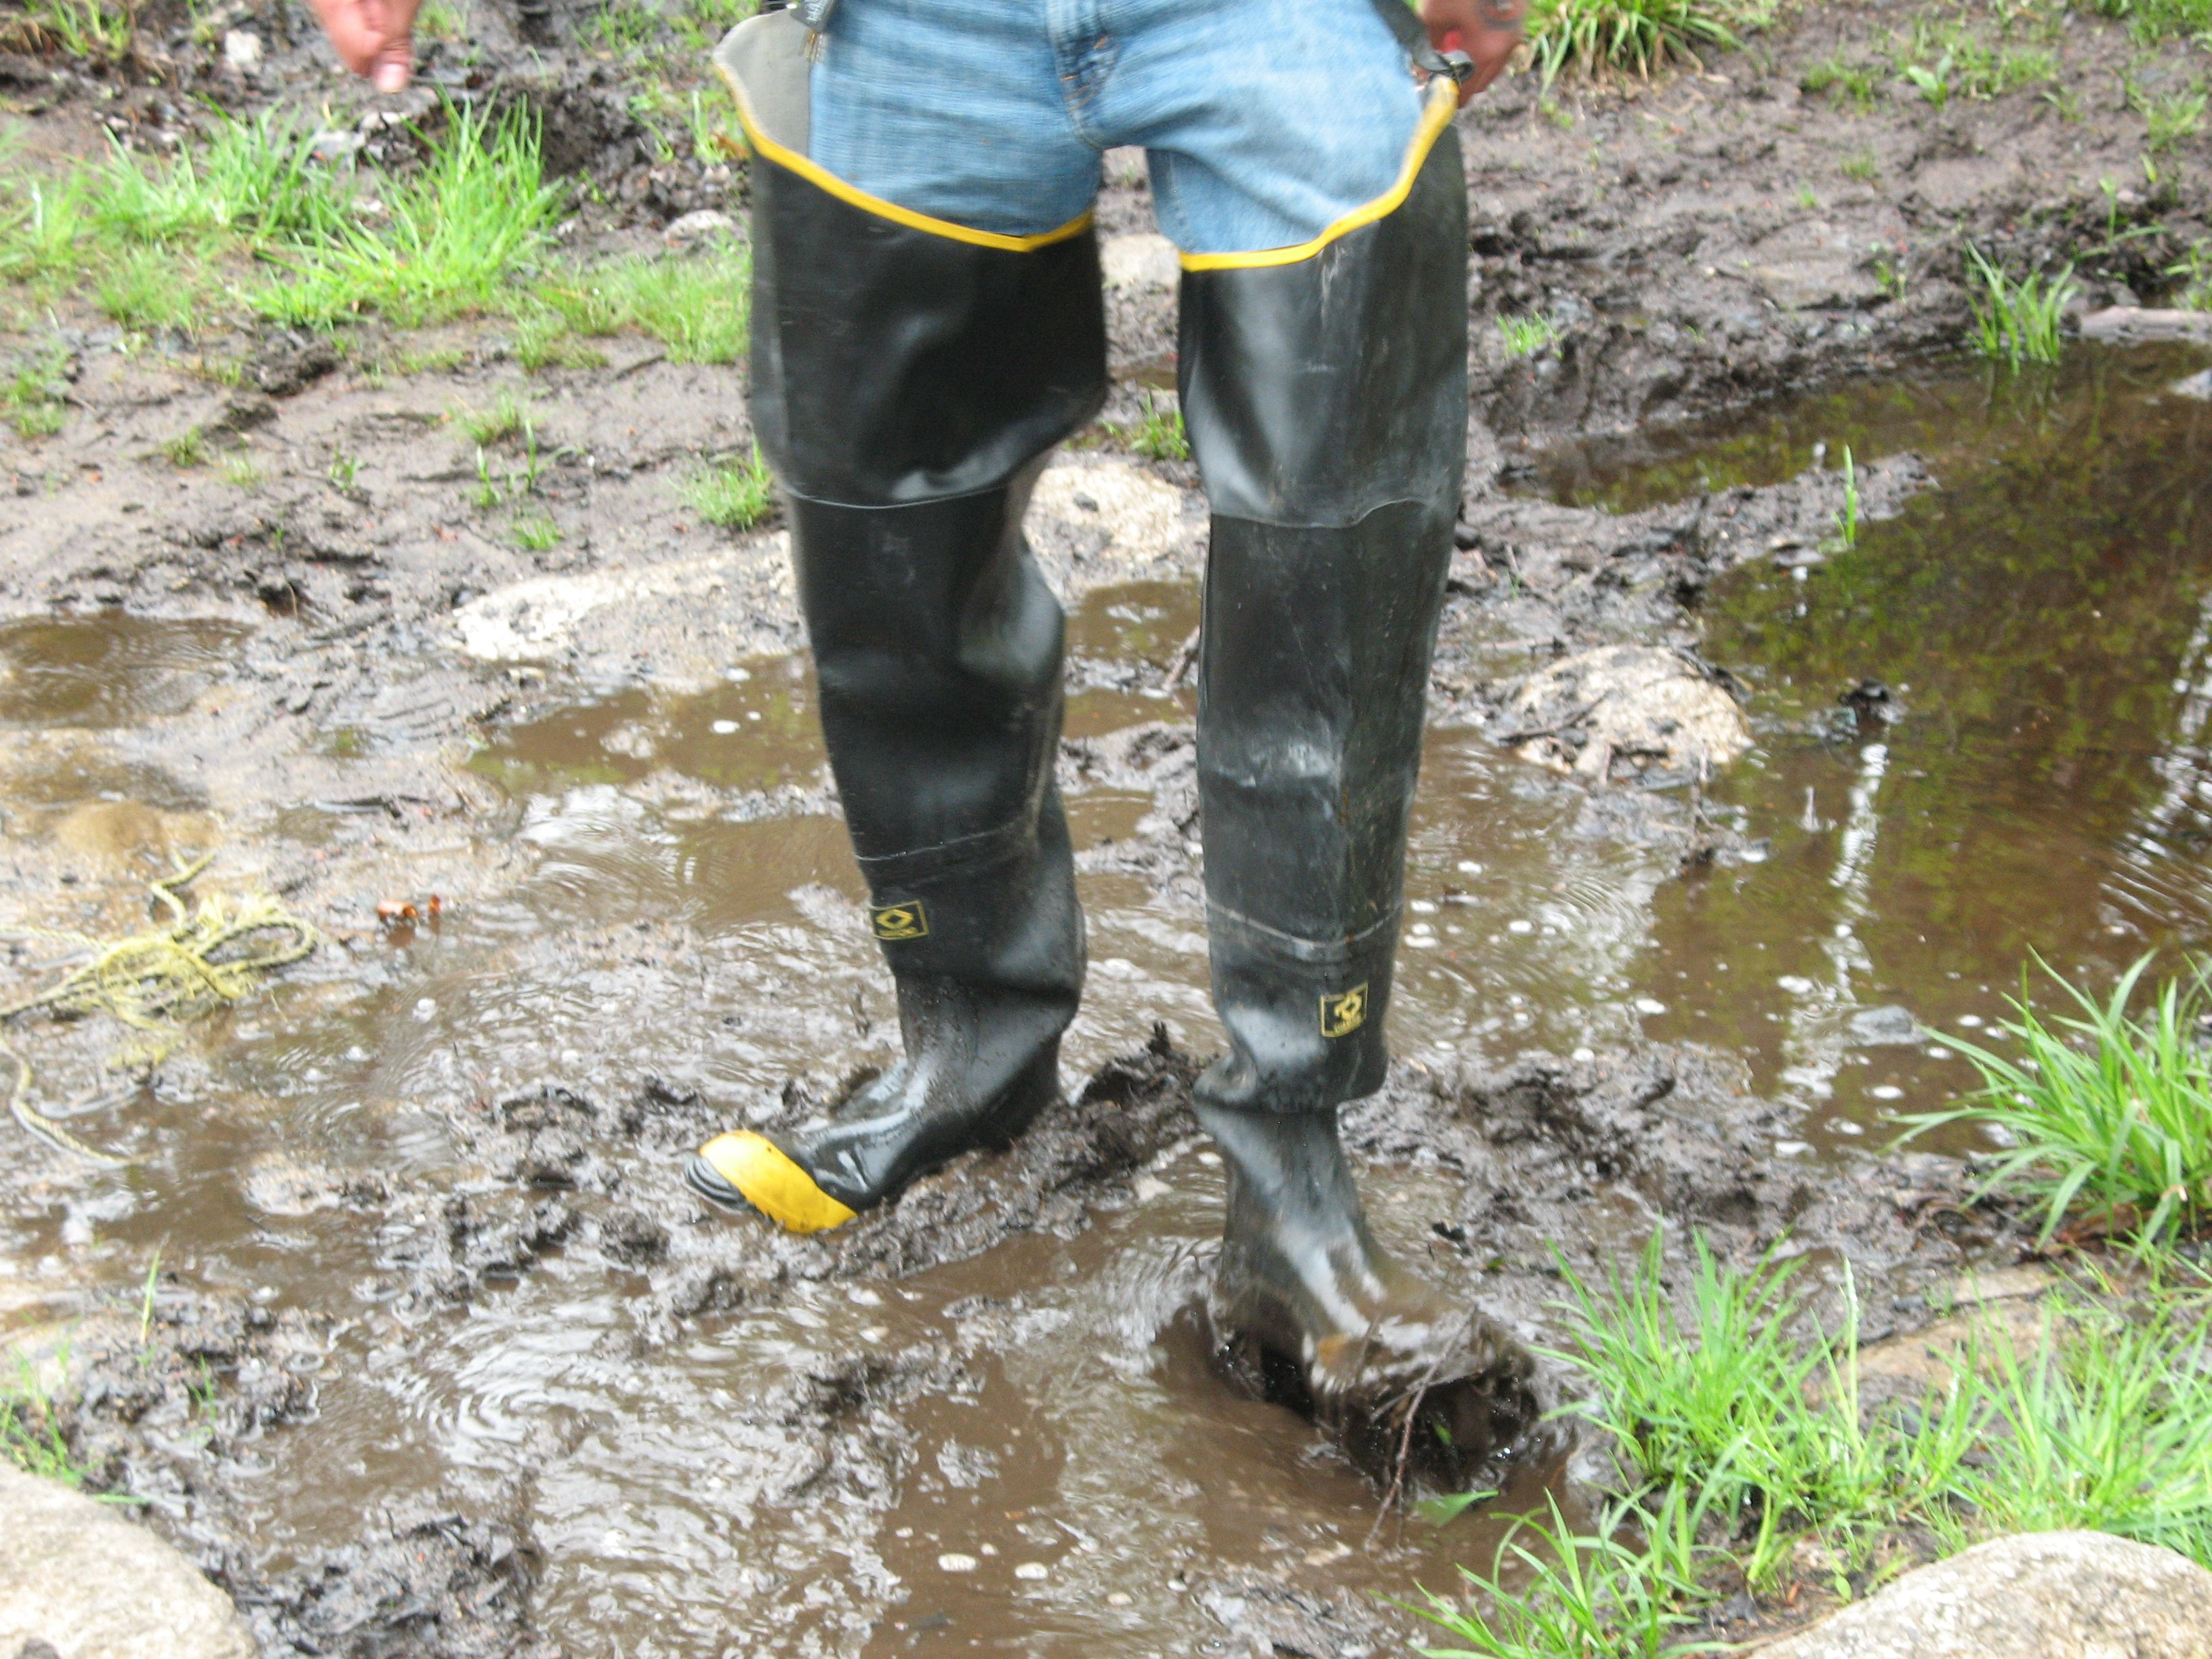 Hip Boots On A Muddy Day Courtesy Of Bill B Firefighter Boots